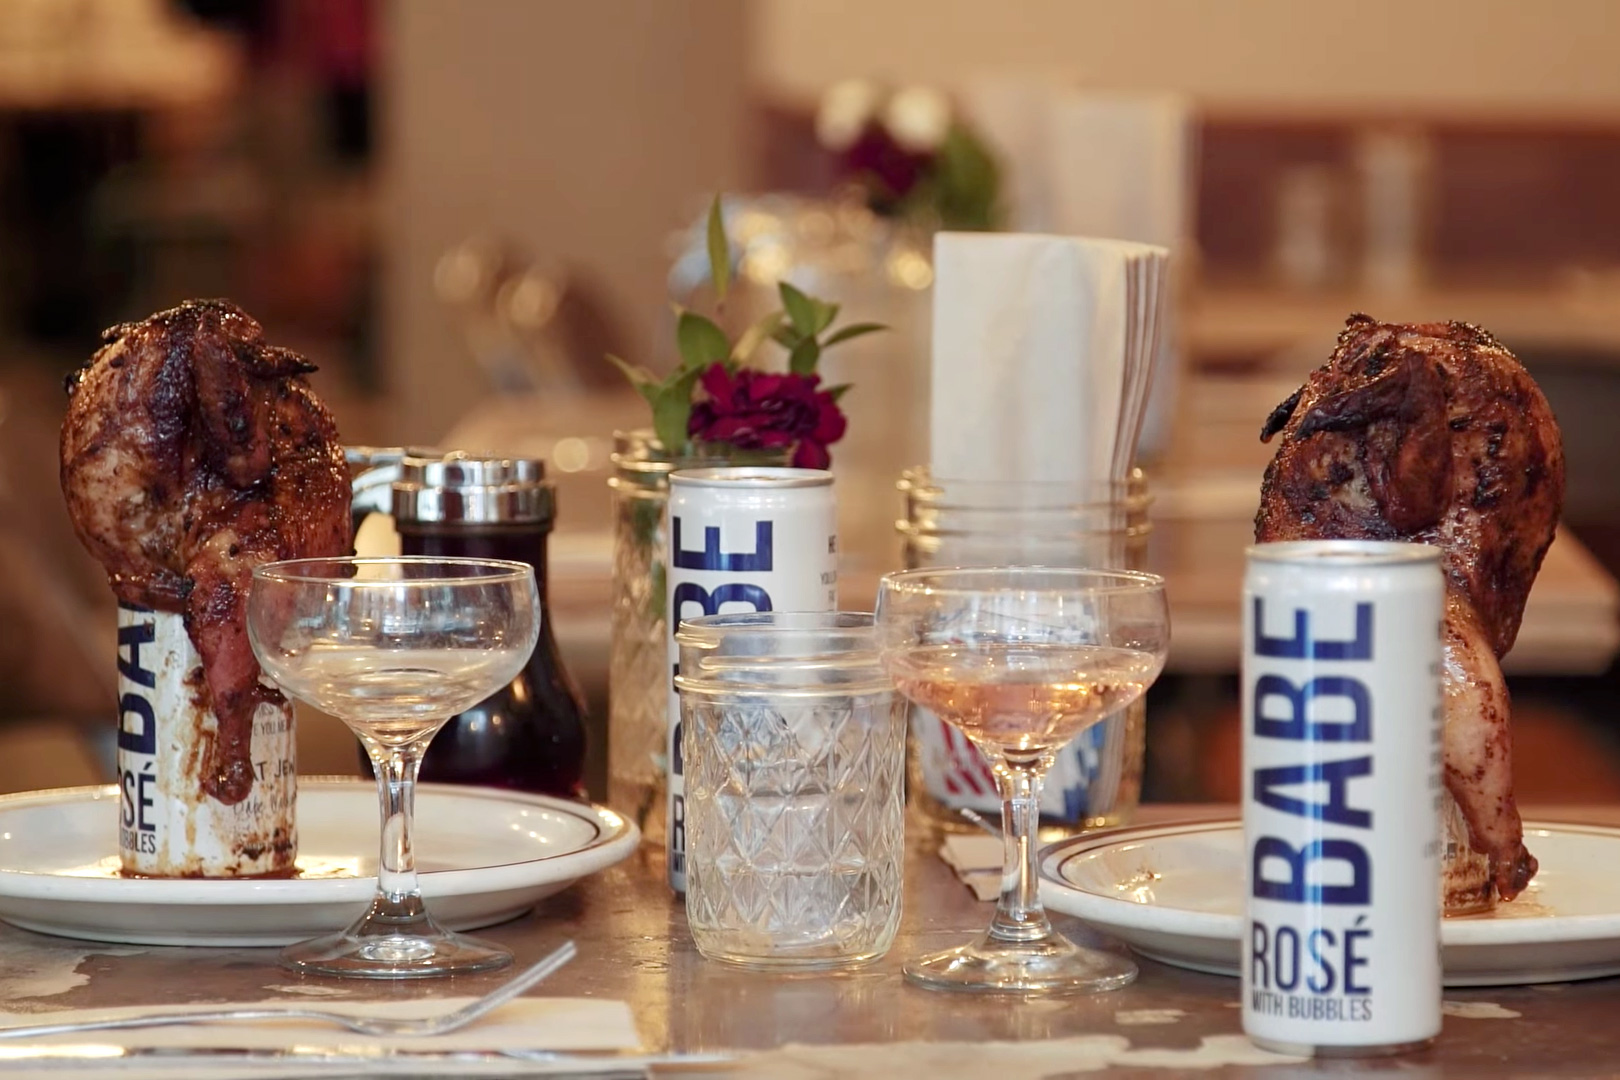 EATS: Rosé Poussin With Sweetchick NYC and The Fat Jew